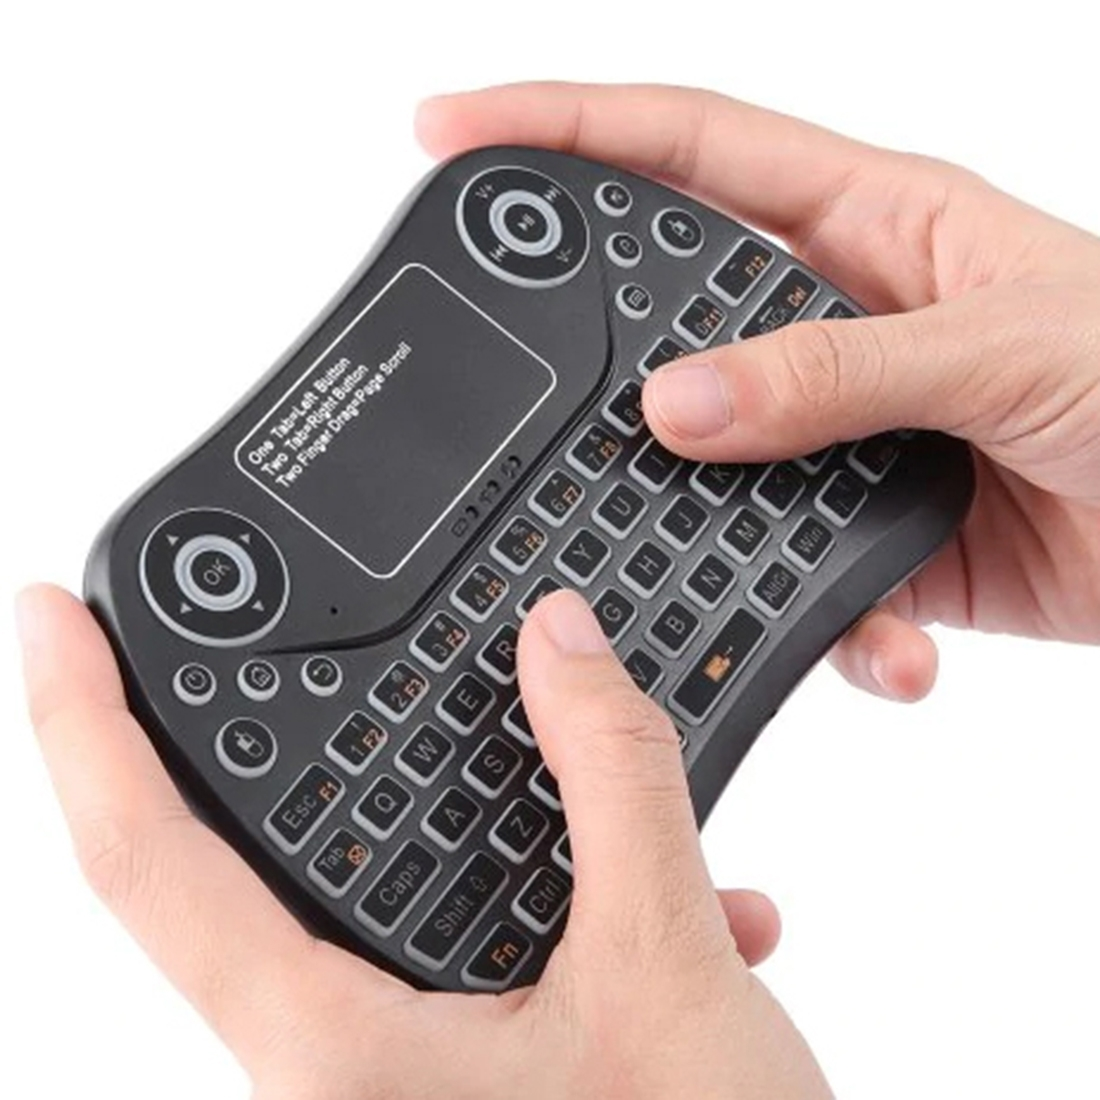 Calvas English Russian Spanish Hebrew MINI Keyboard 2.4G USB Wireless Touchpad /& Air Mouse Remote Control for Android Windows TV Box Color: English